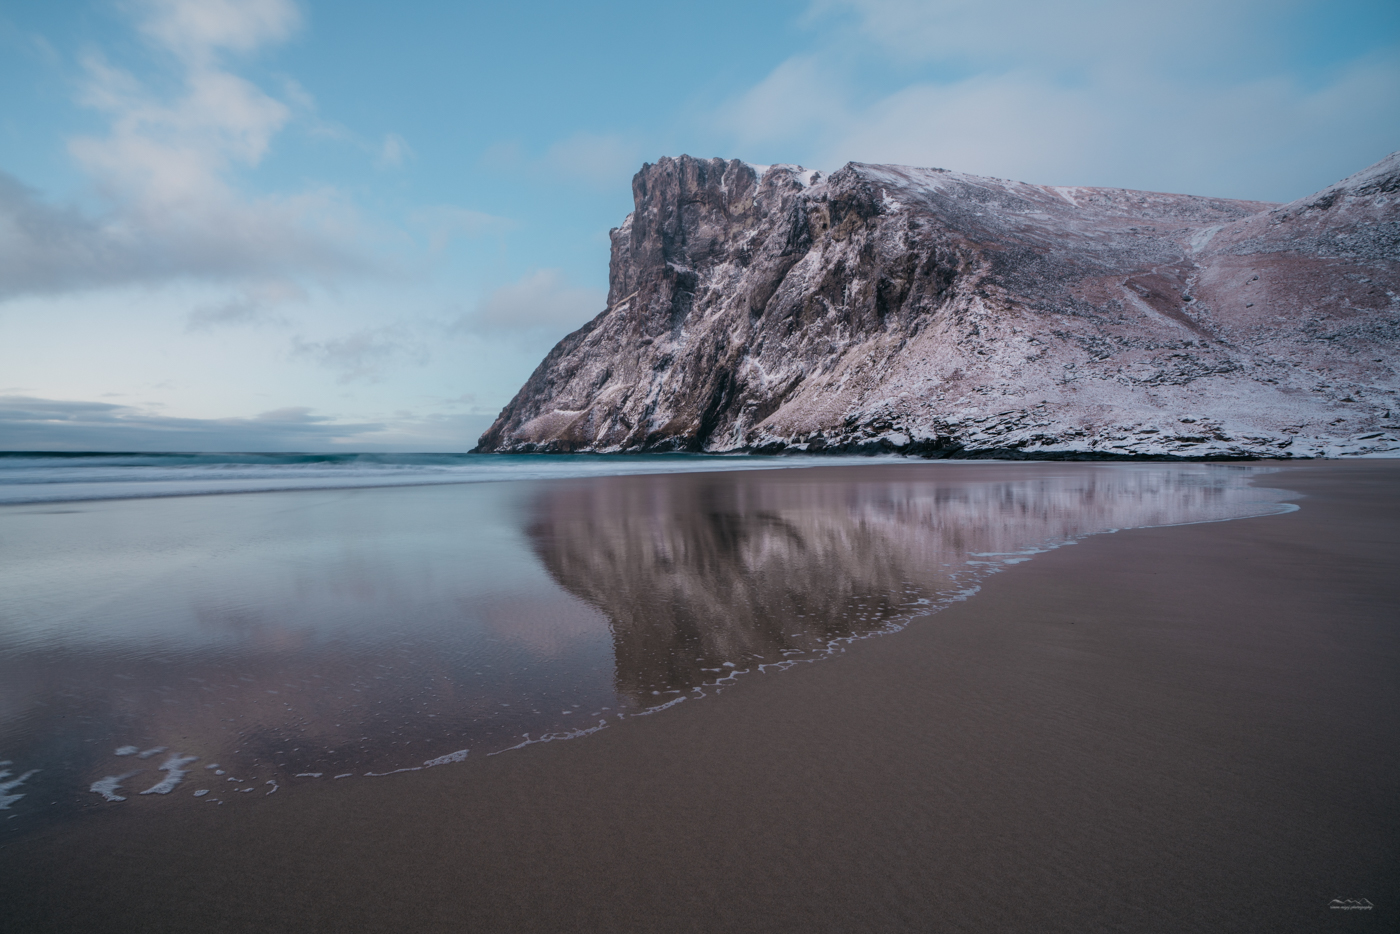 Amazing reflections in the wet surface of Kvalvika Beach